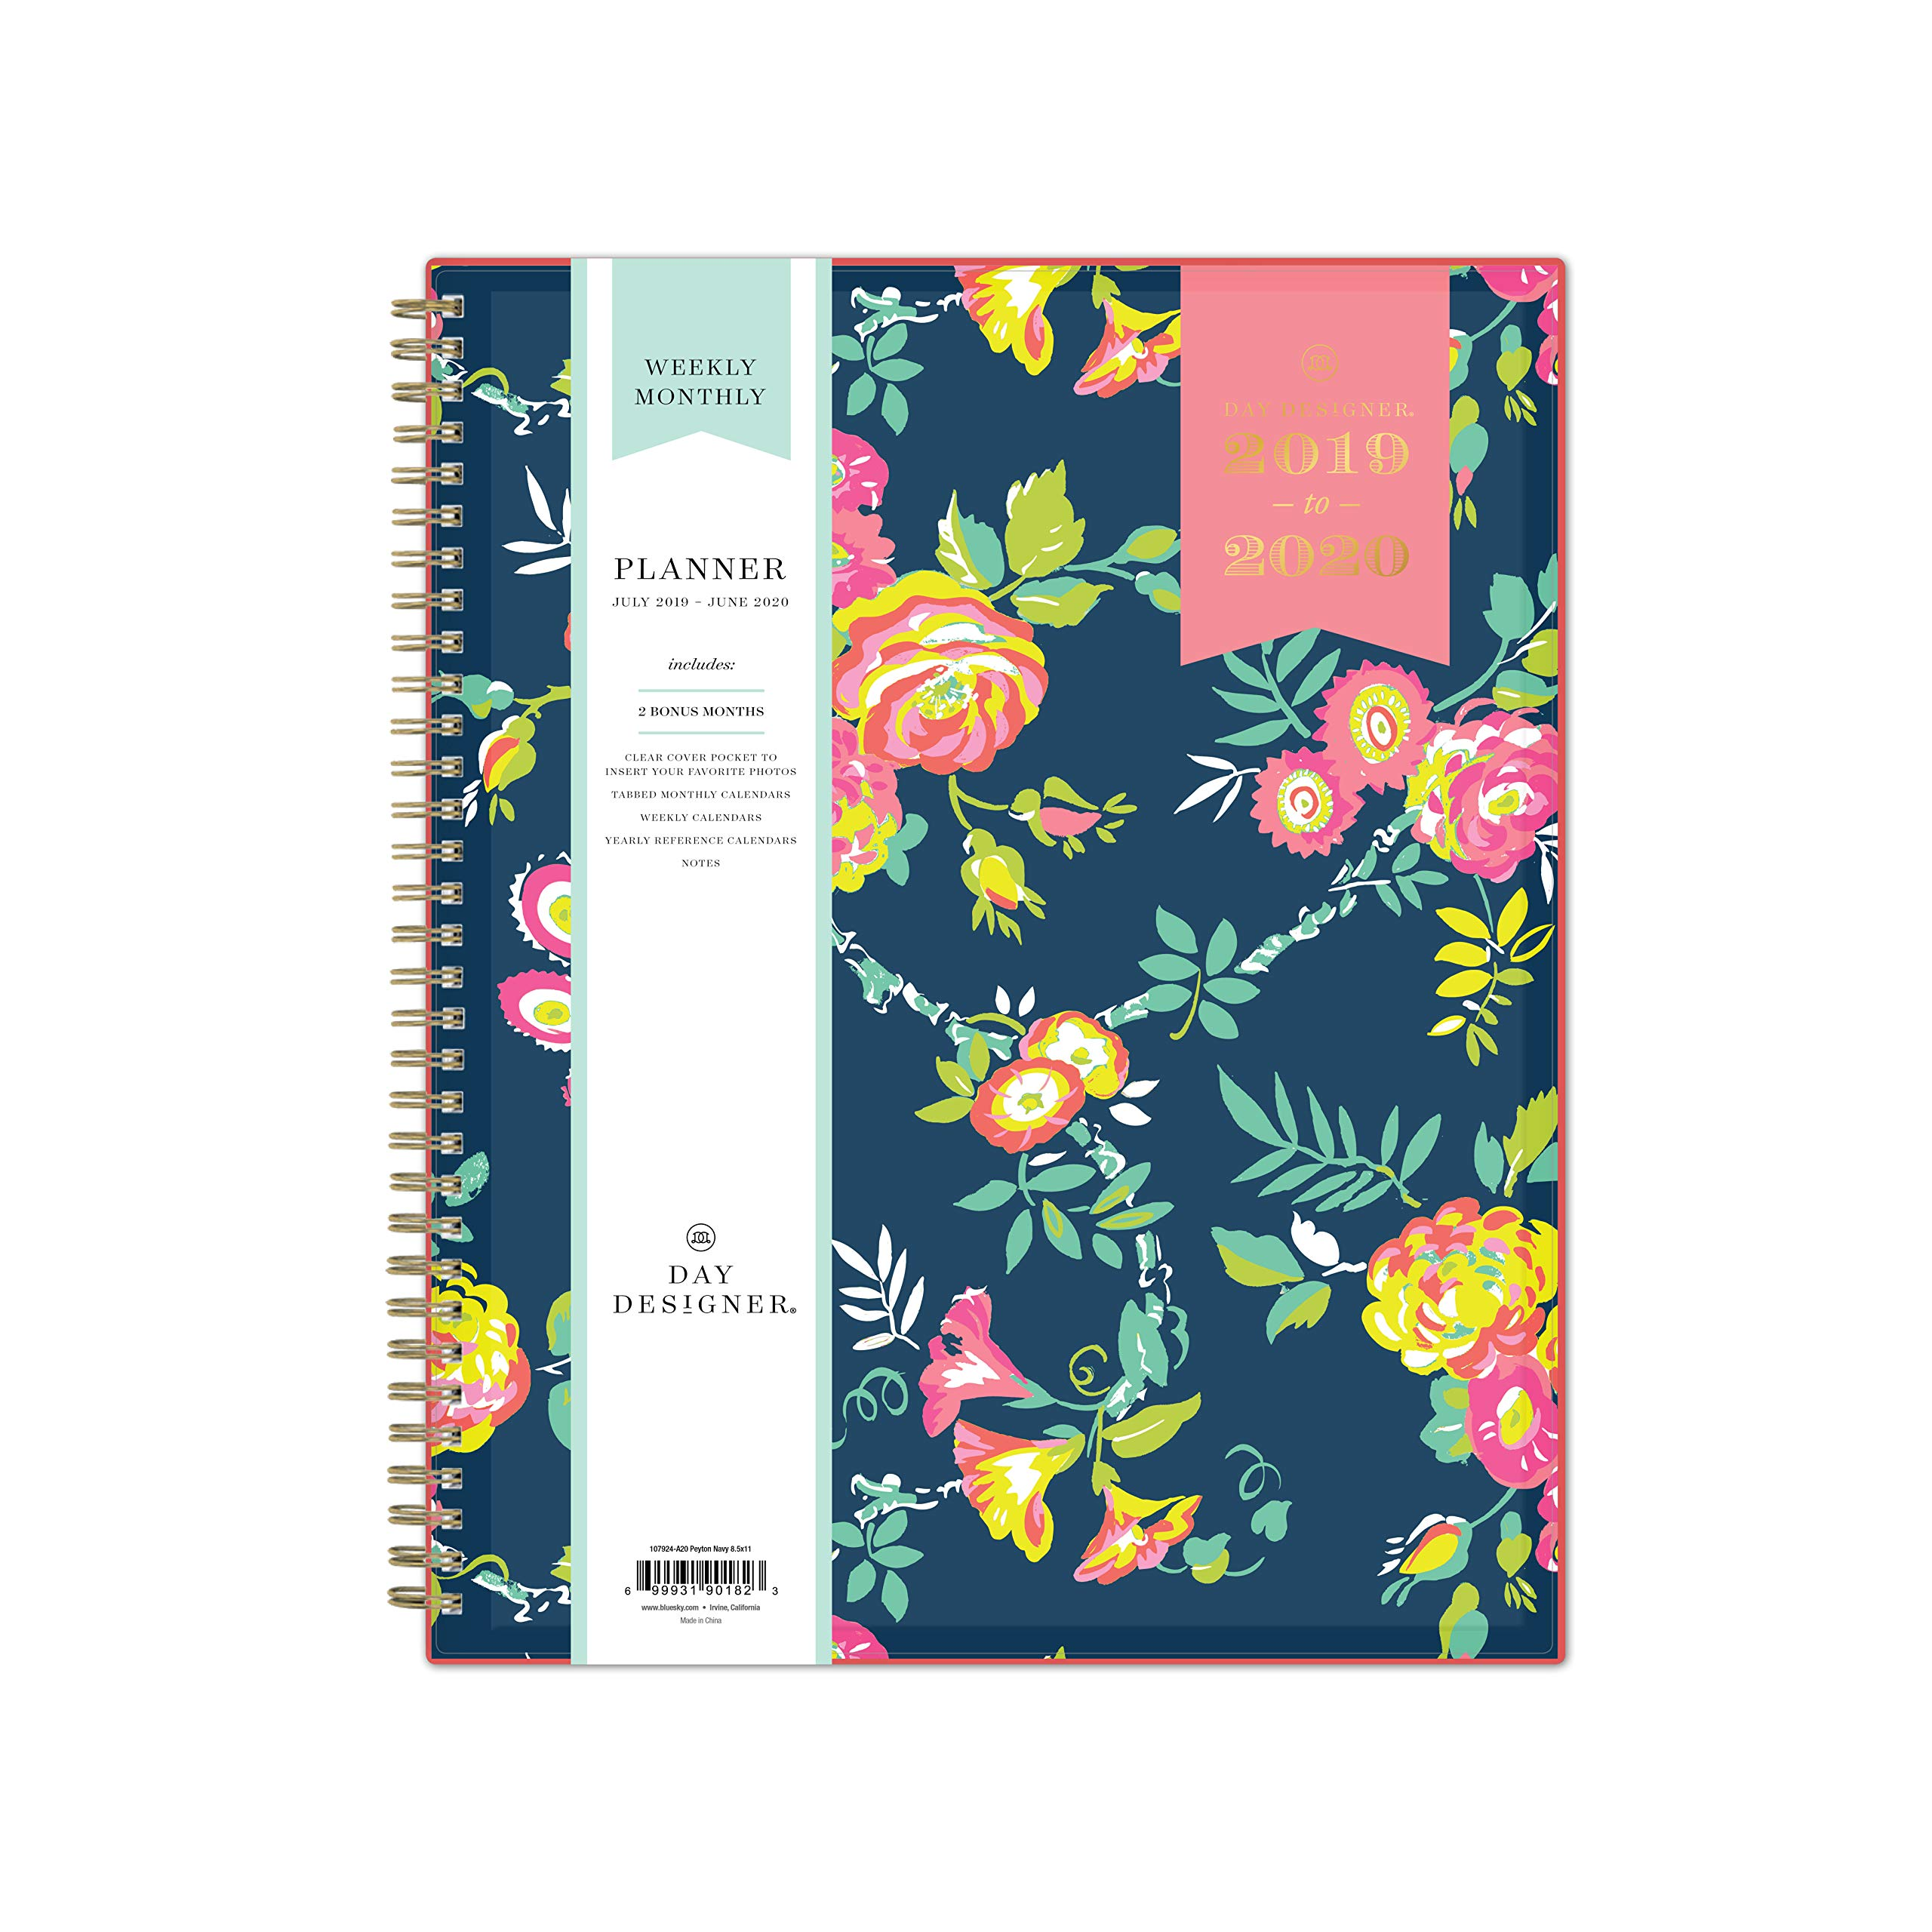 Day Designer for Blue Sky 2019-2020 Academic Year Weekly & Monthly Planner, Flexible Cover, Twin-Wire Binding, 8.5'' x 11'', Peyton Navy by Blue Sky